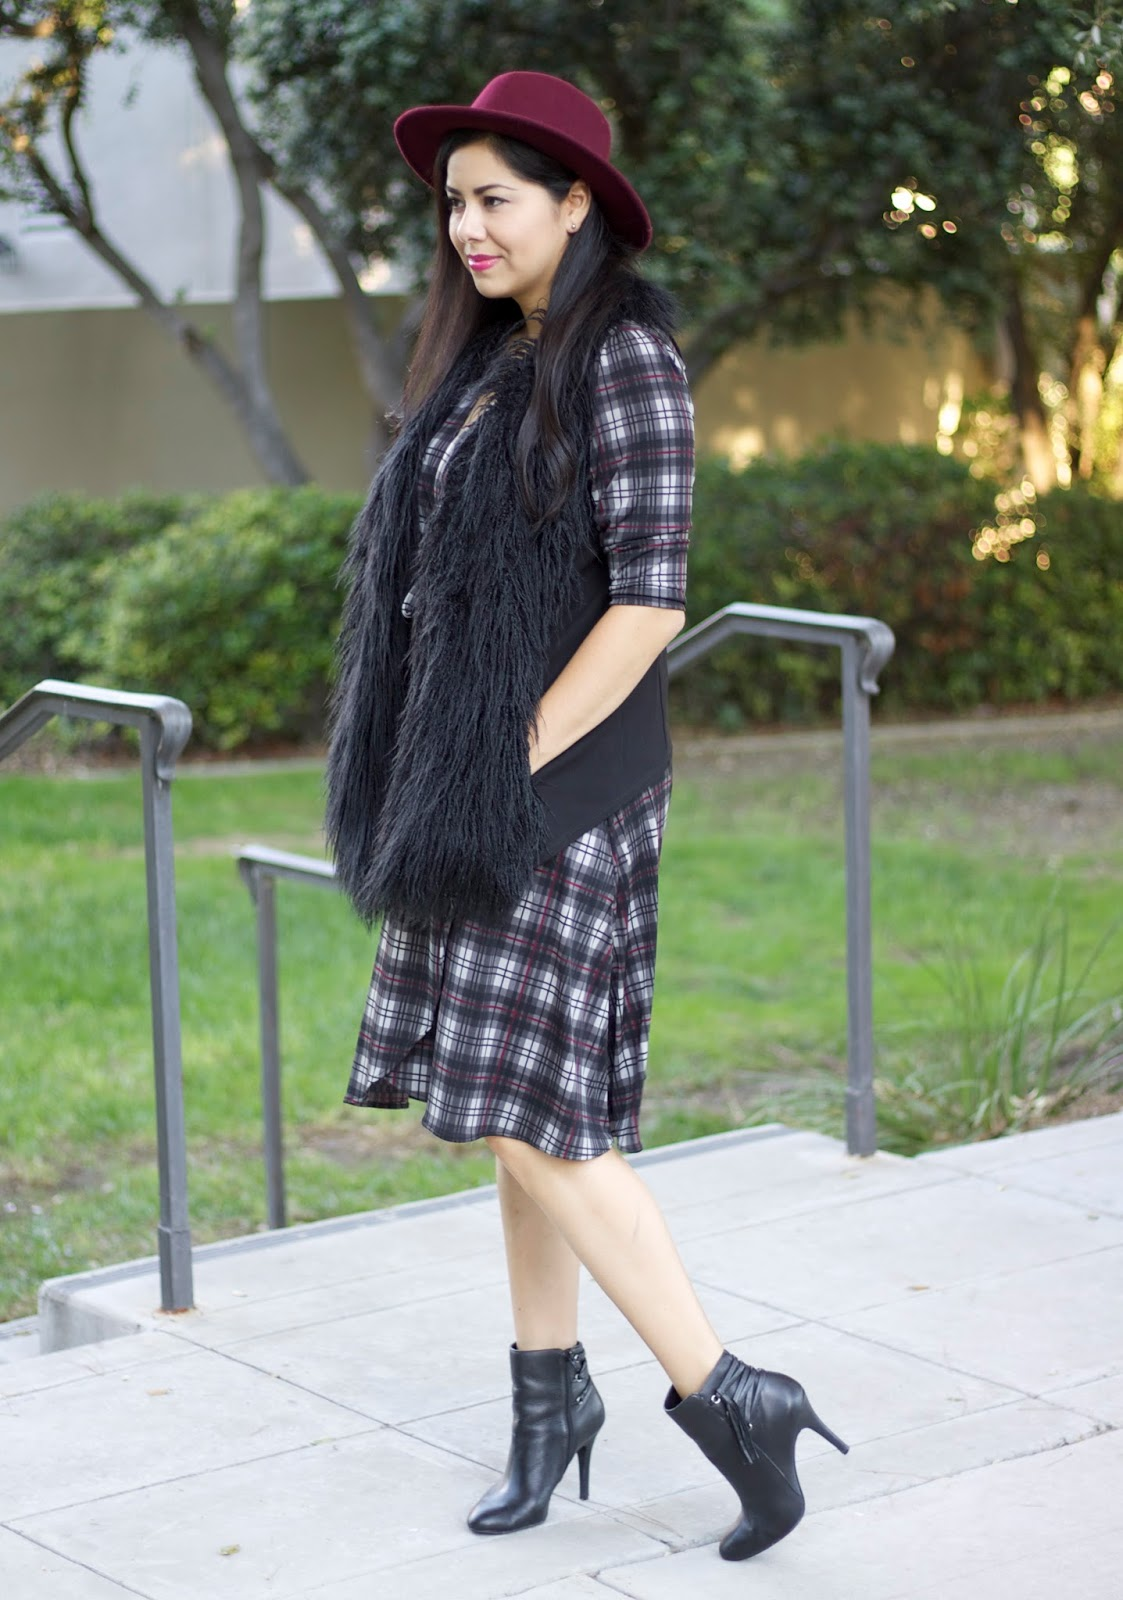 Karina Dresses, Karina Dresses plaid, fall fashion 2015, fall style 2015, socal fashion blogger